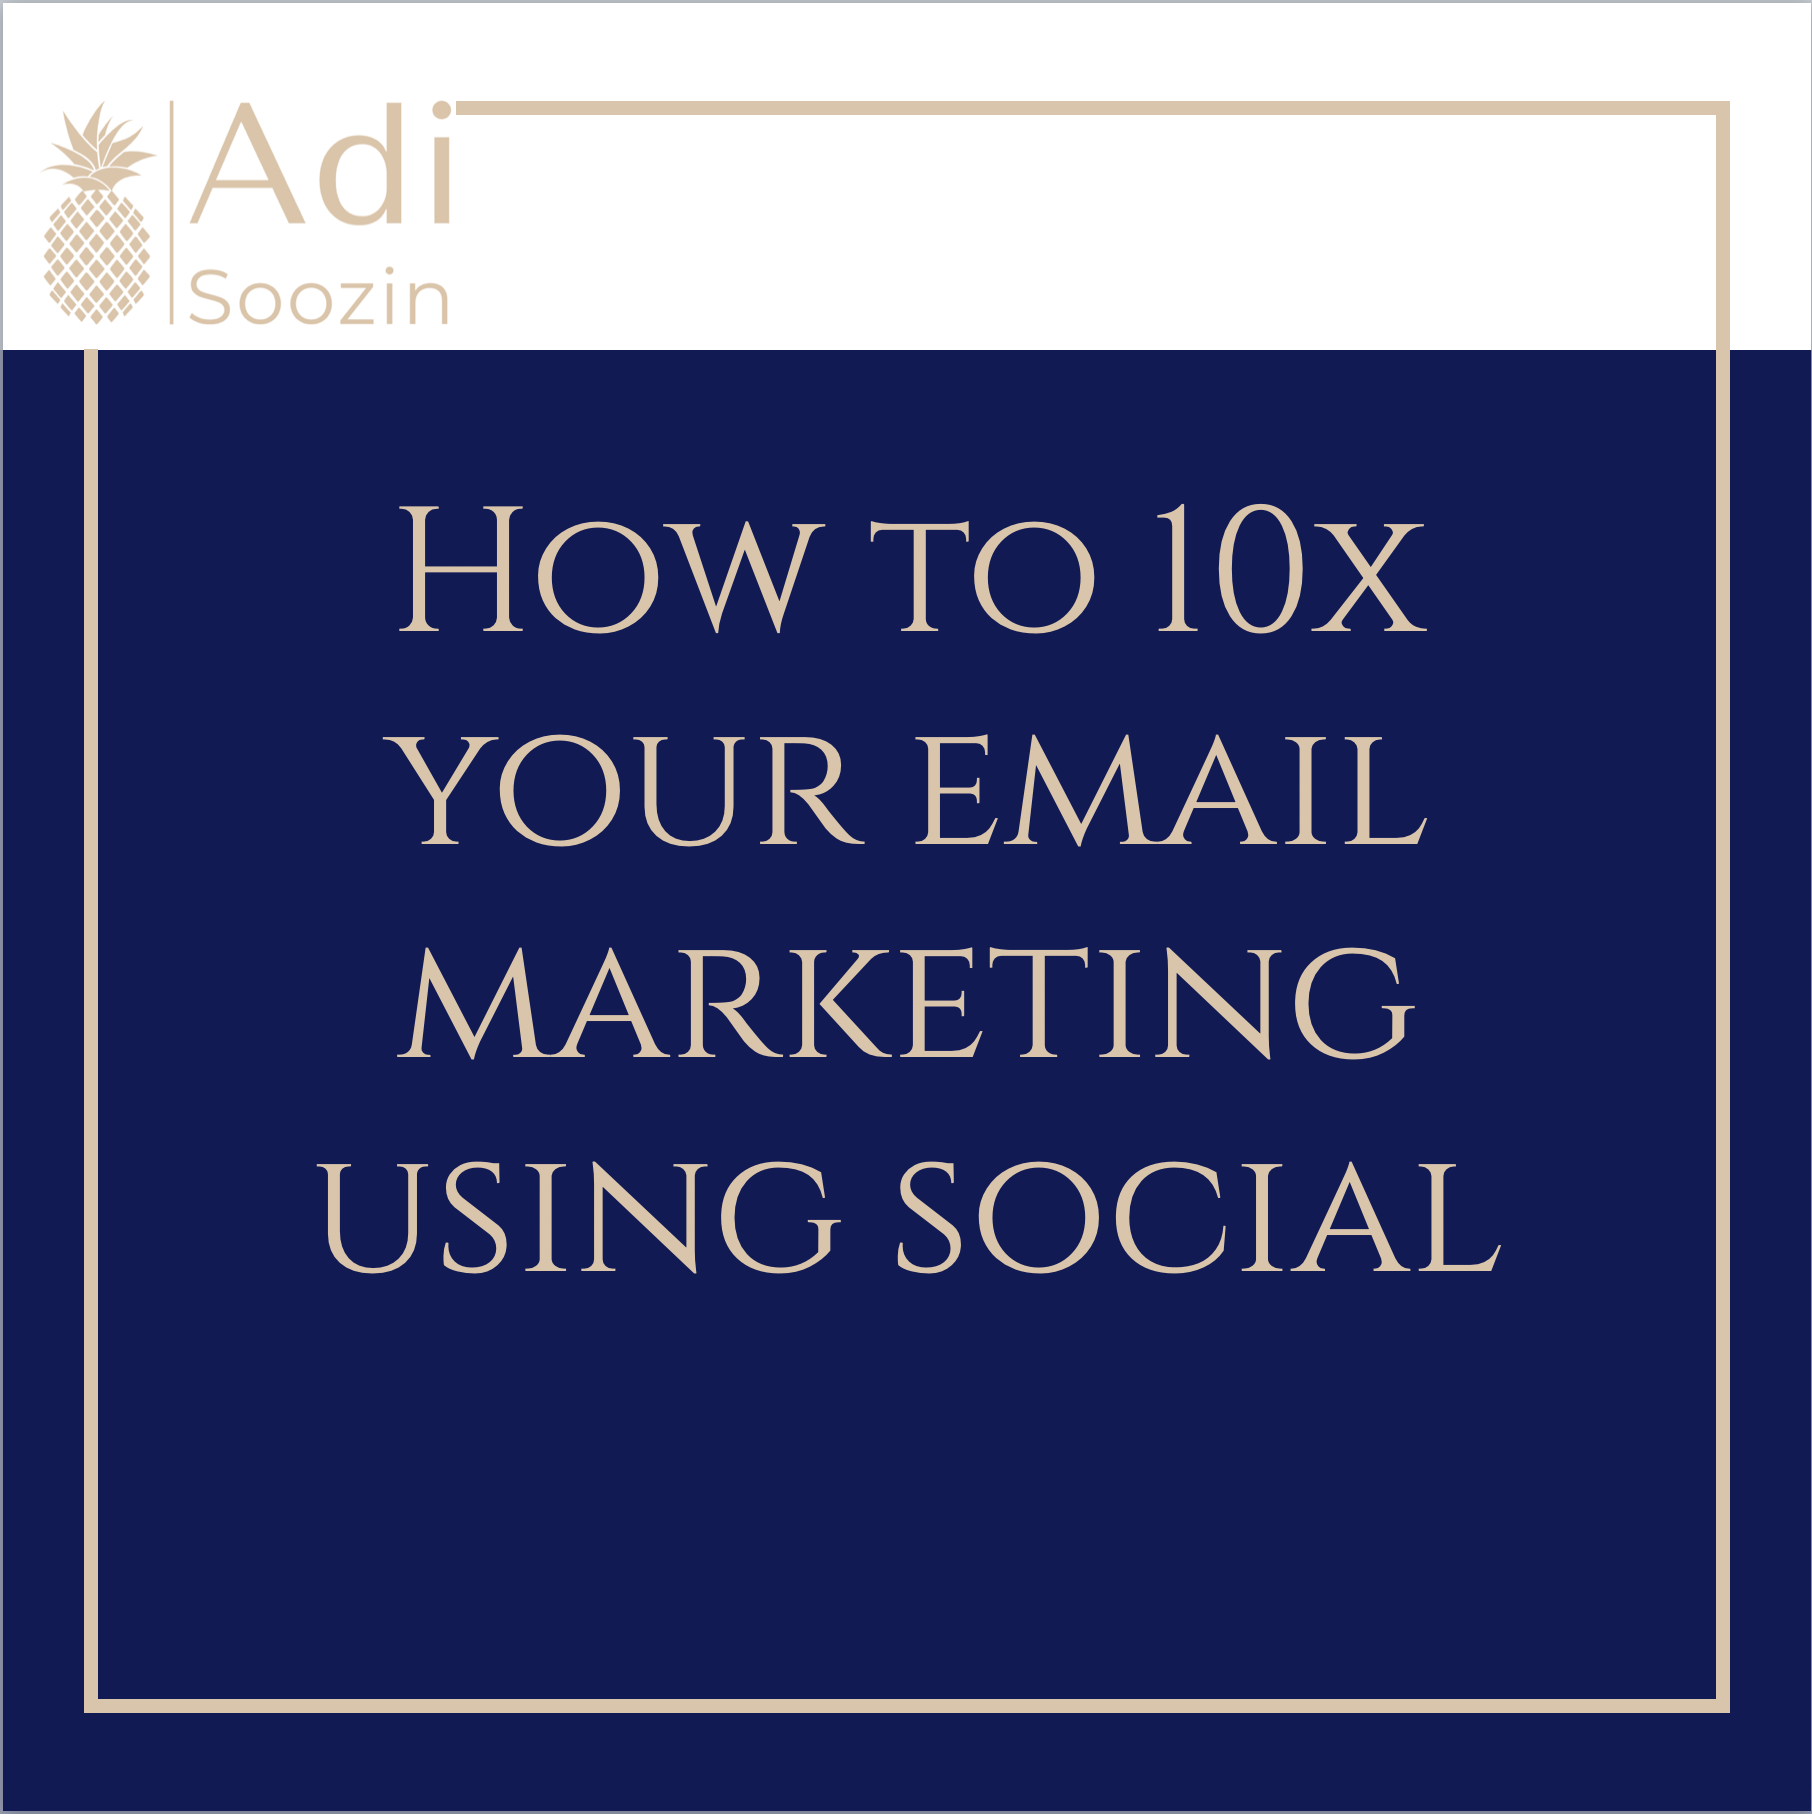 How To 10x Your Email Marketing Using Social